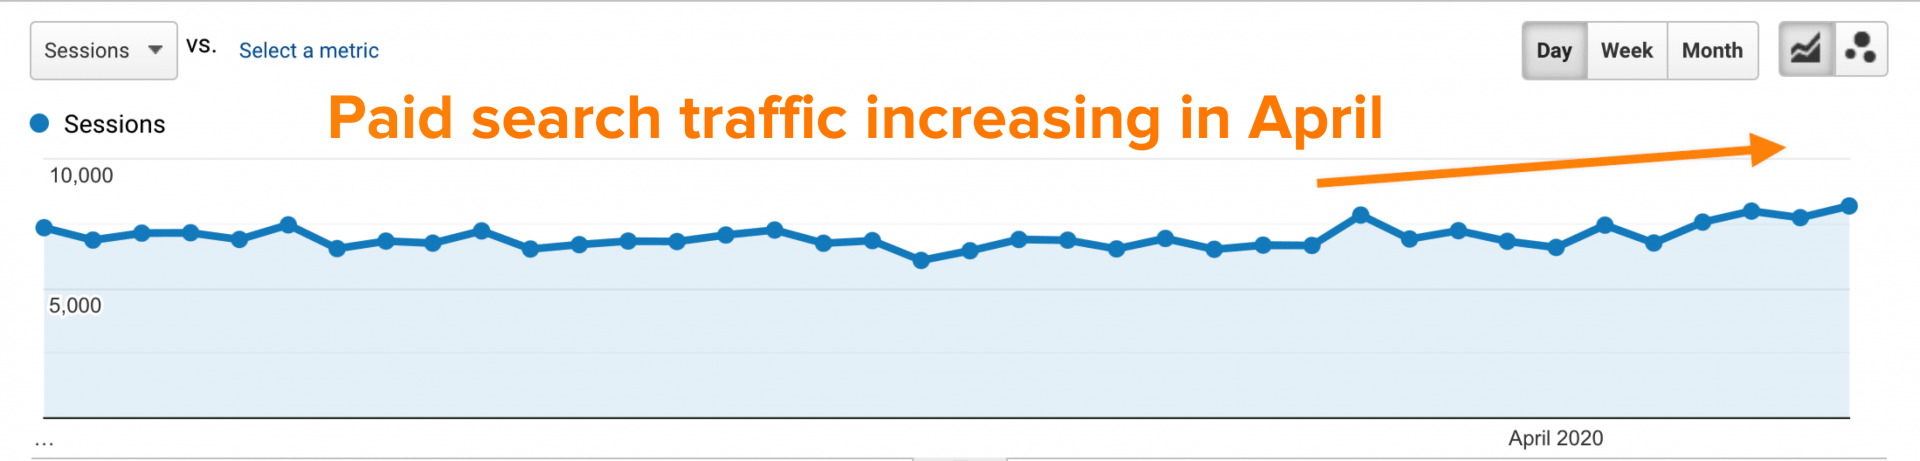 Paid Search Traffic During COVID-19